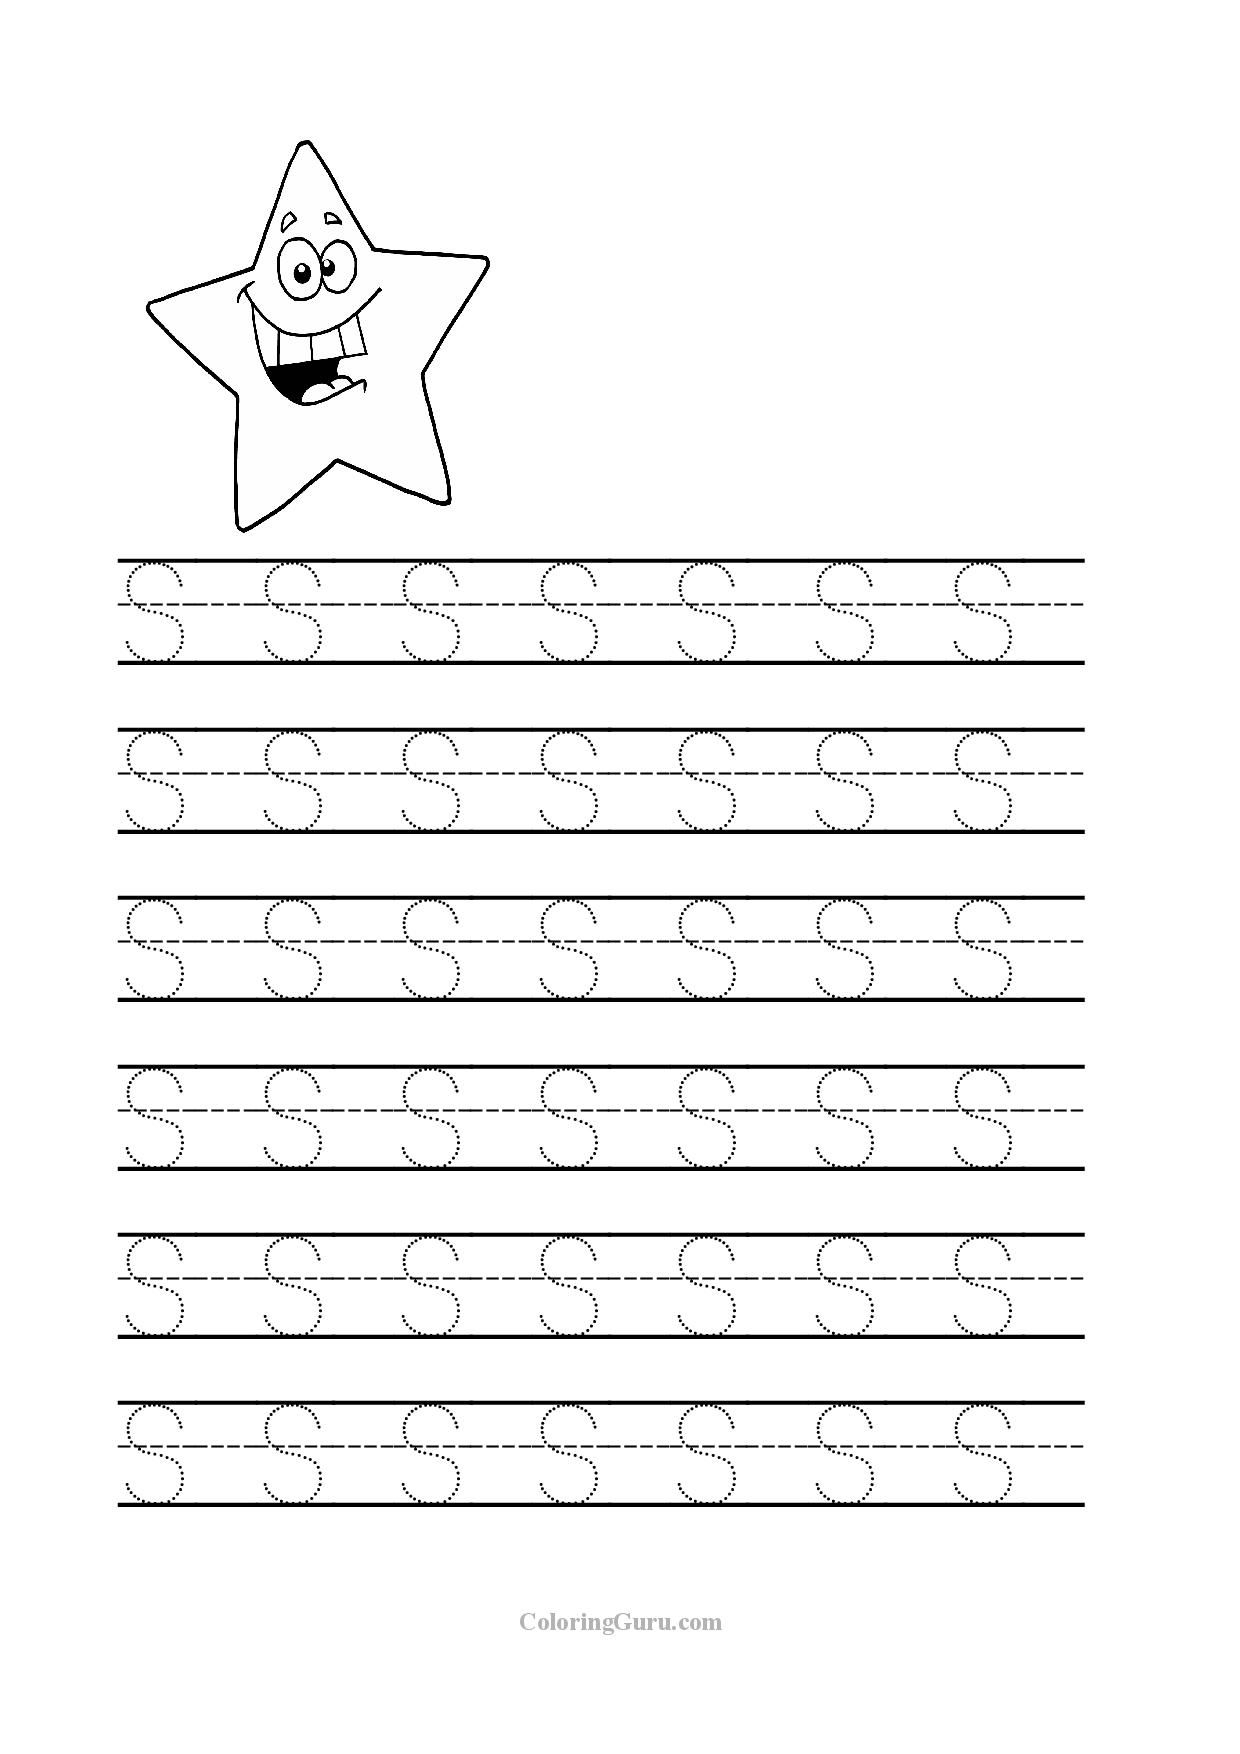 Free Printable Tracing Letter S Worksheets For Preschool pertaining to Letter Tracing Worksheets Toddlers